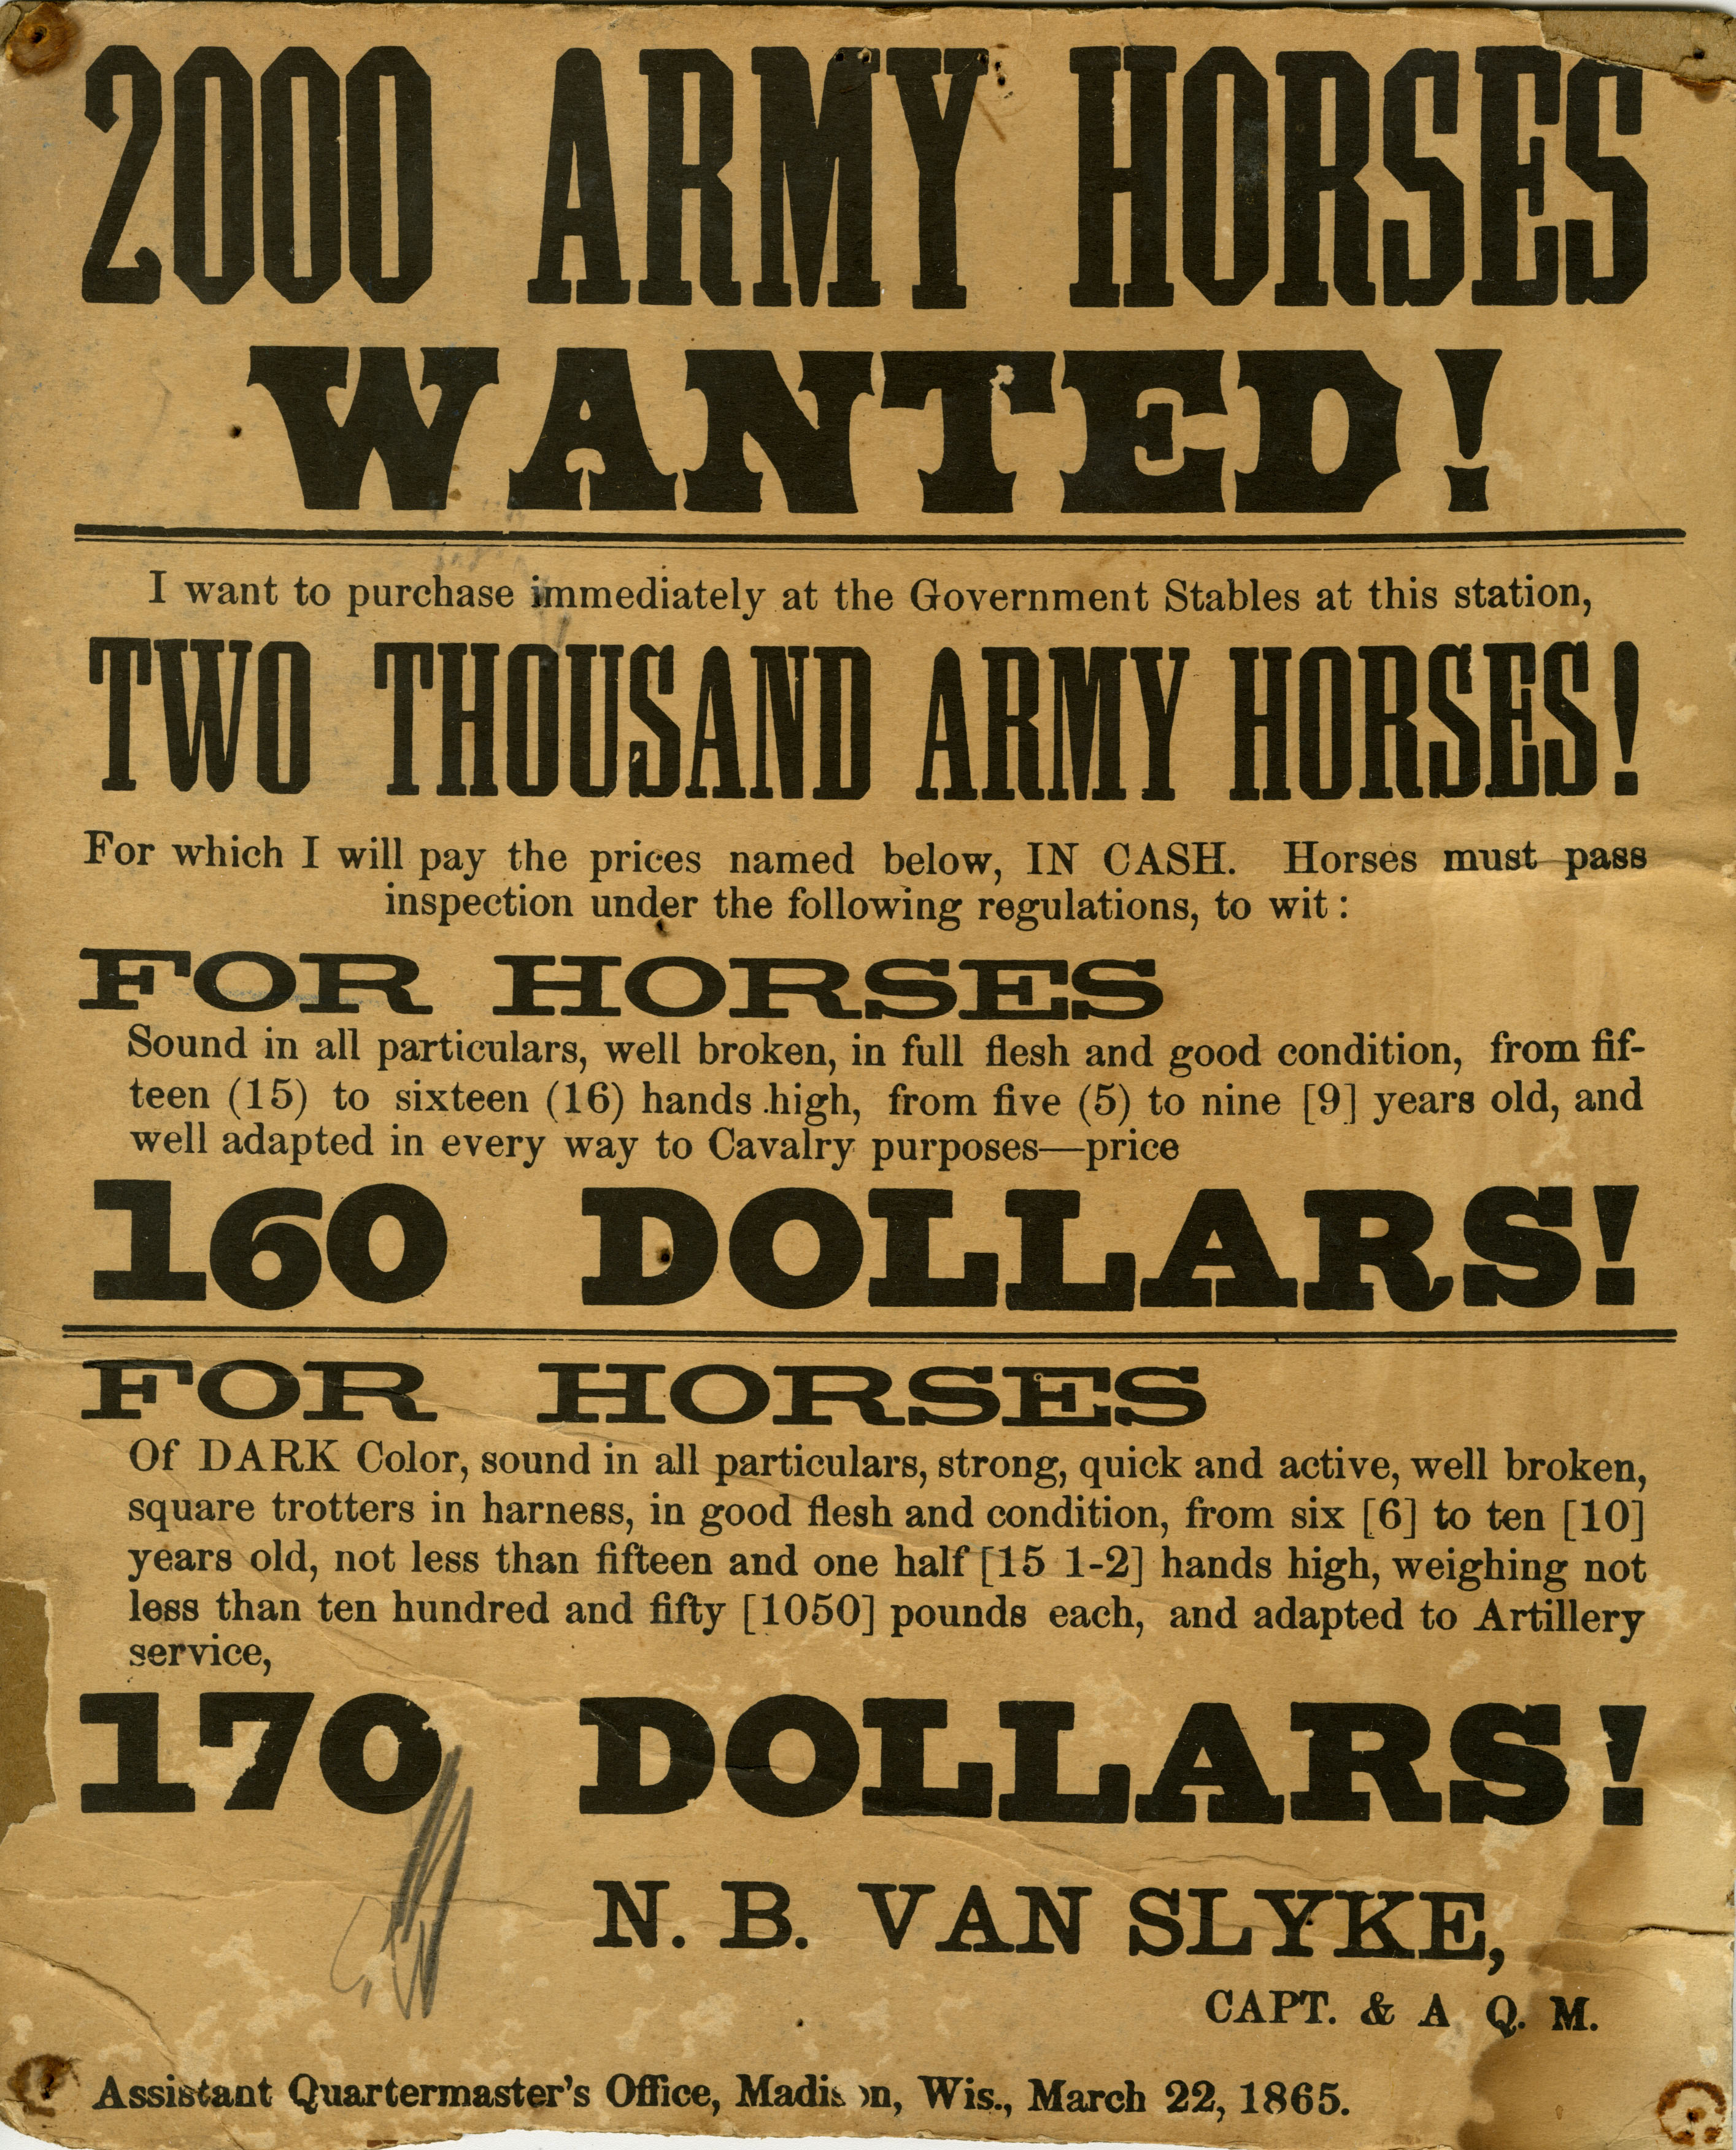 Civil War broadside issued in Madison, Wisconsin, requesting the need for horses for cavalry and artillery units. The broadside was issued on March 22, 1862 by Napoleon B. Van Slyke, who served as a captain and assistant quartermaster with the assistant quartermaster's office.